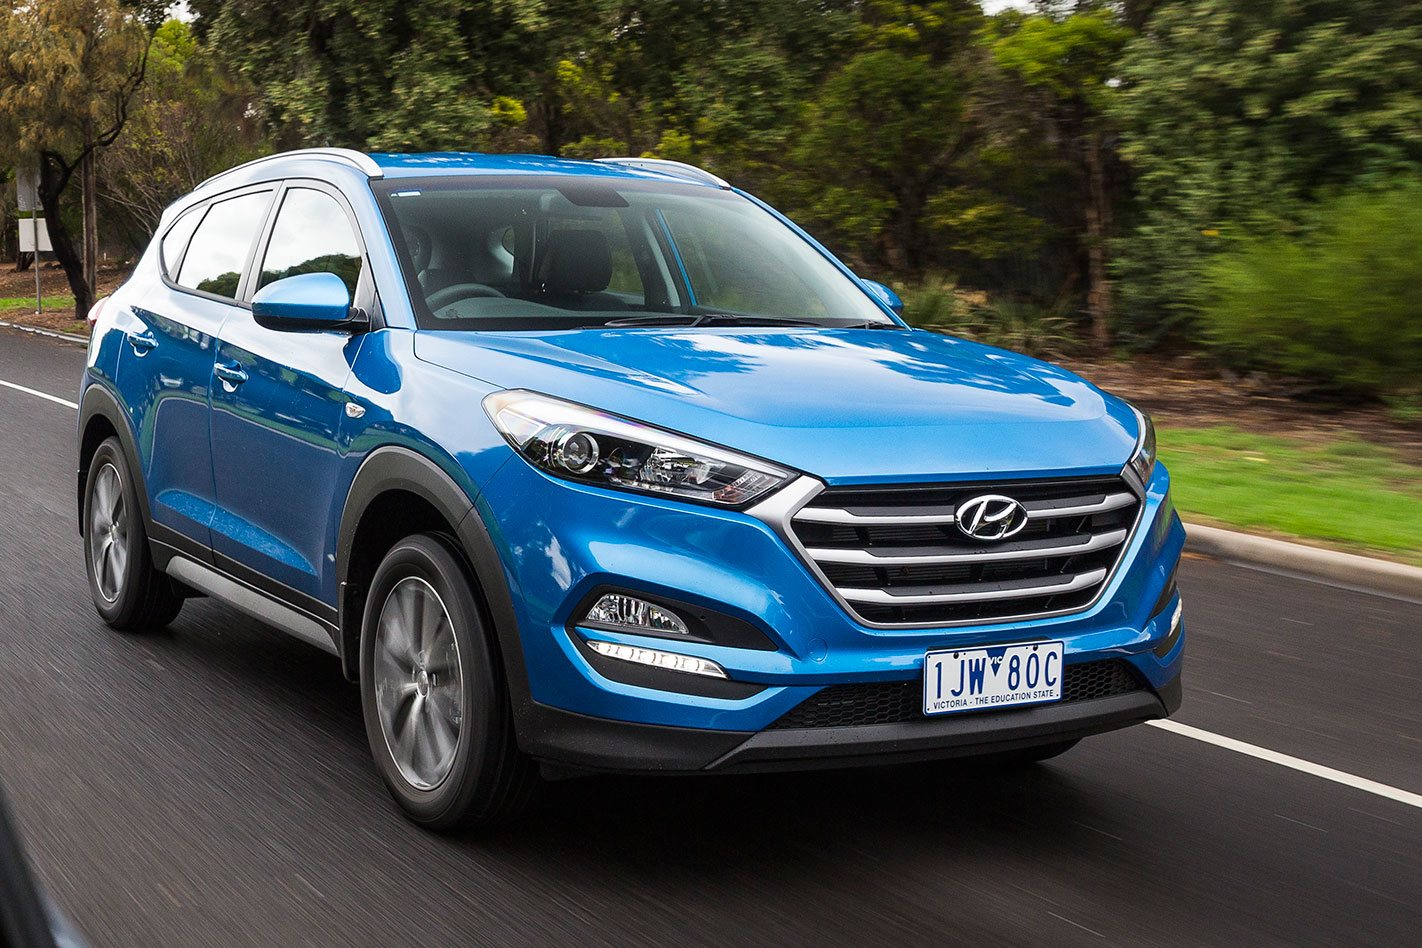 hyundai tucson 2018 review price features whichcar. Black Bedroom Furniture Sets. Home Design Ideas